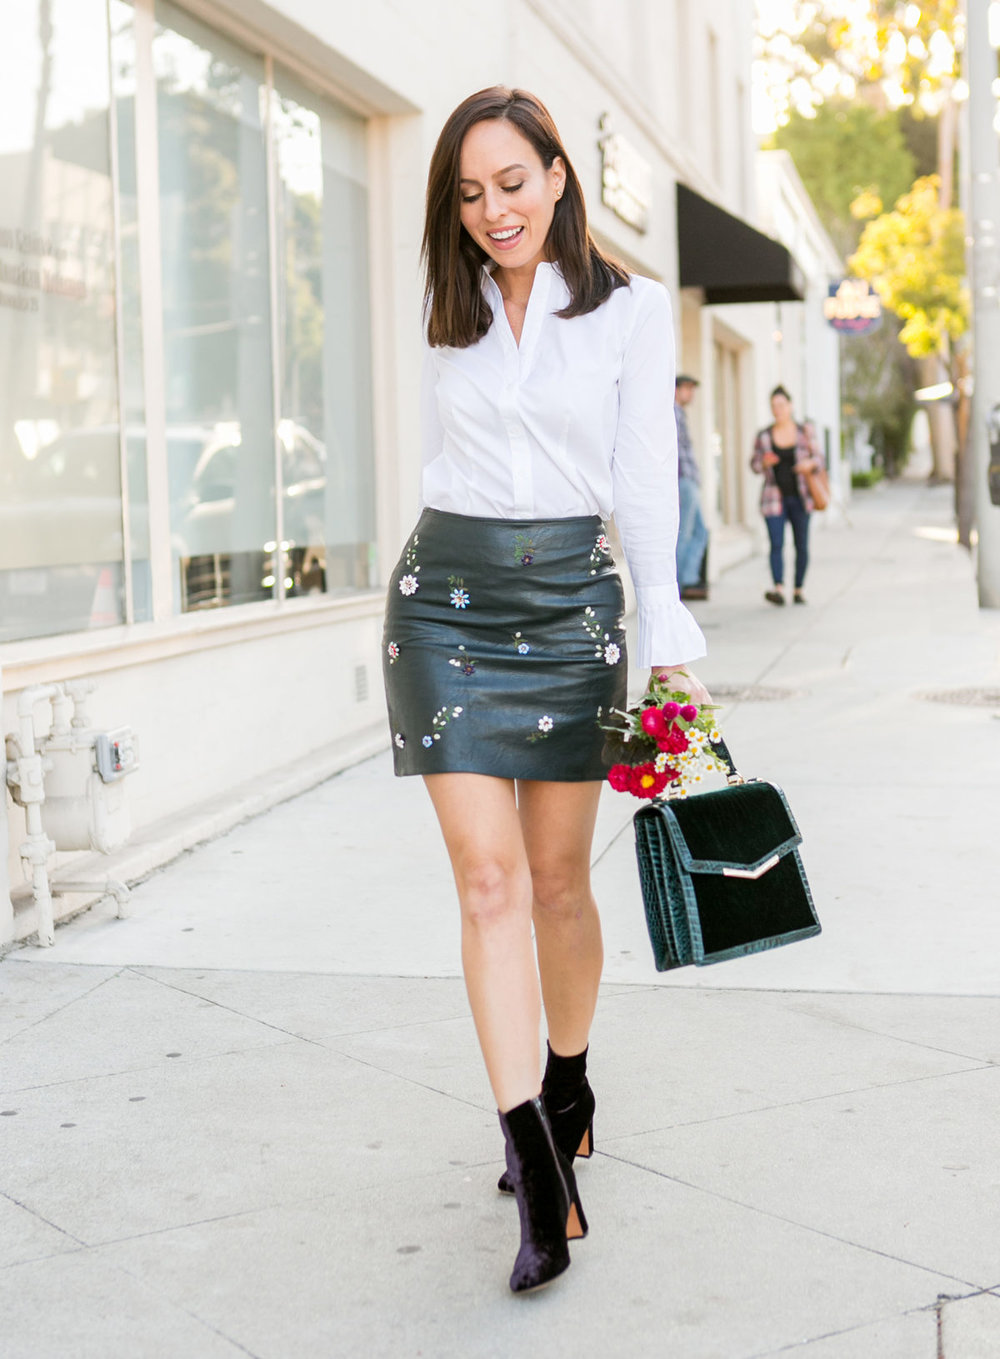 Sydne-Style-shows-how-to-wear-a-leather-mini-skirt-and-booties-for-fall-1200x1631.jpg